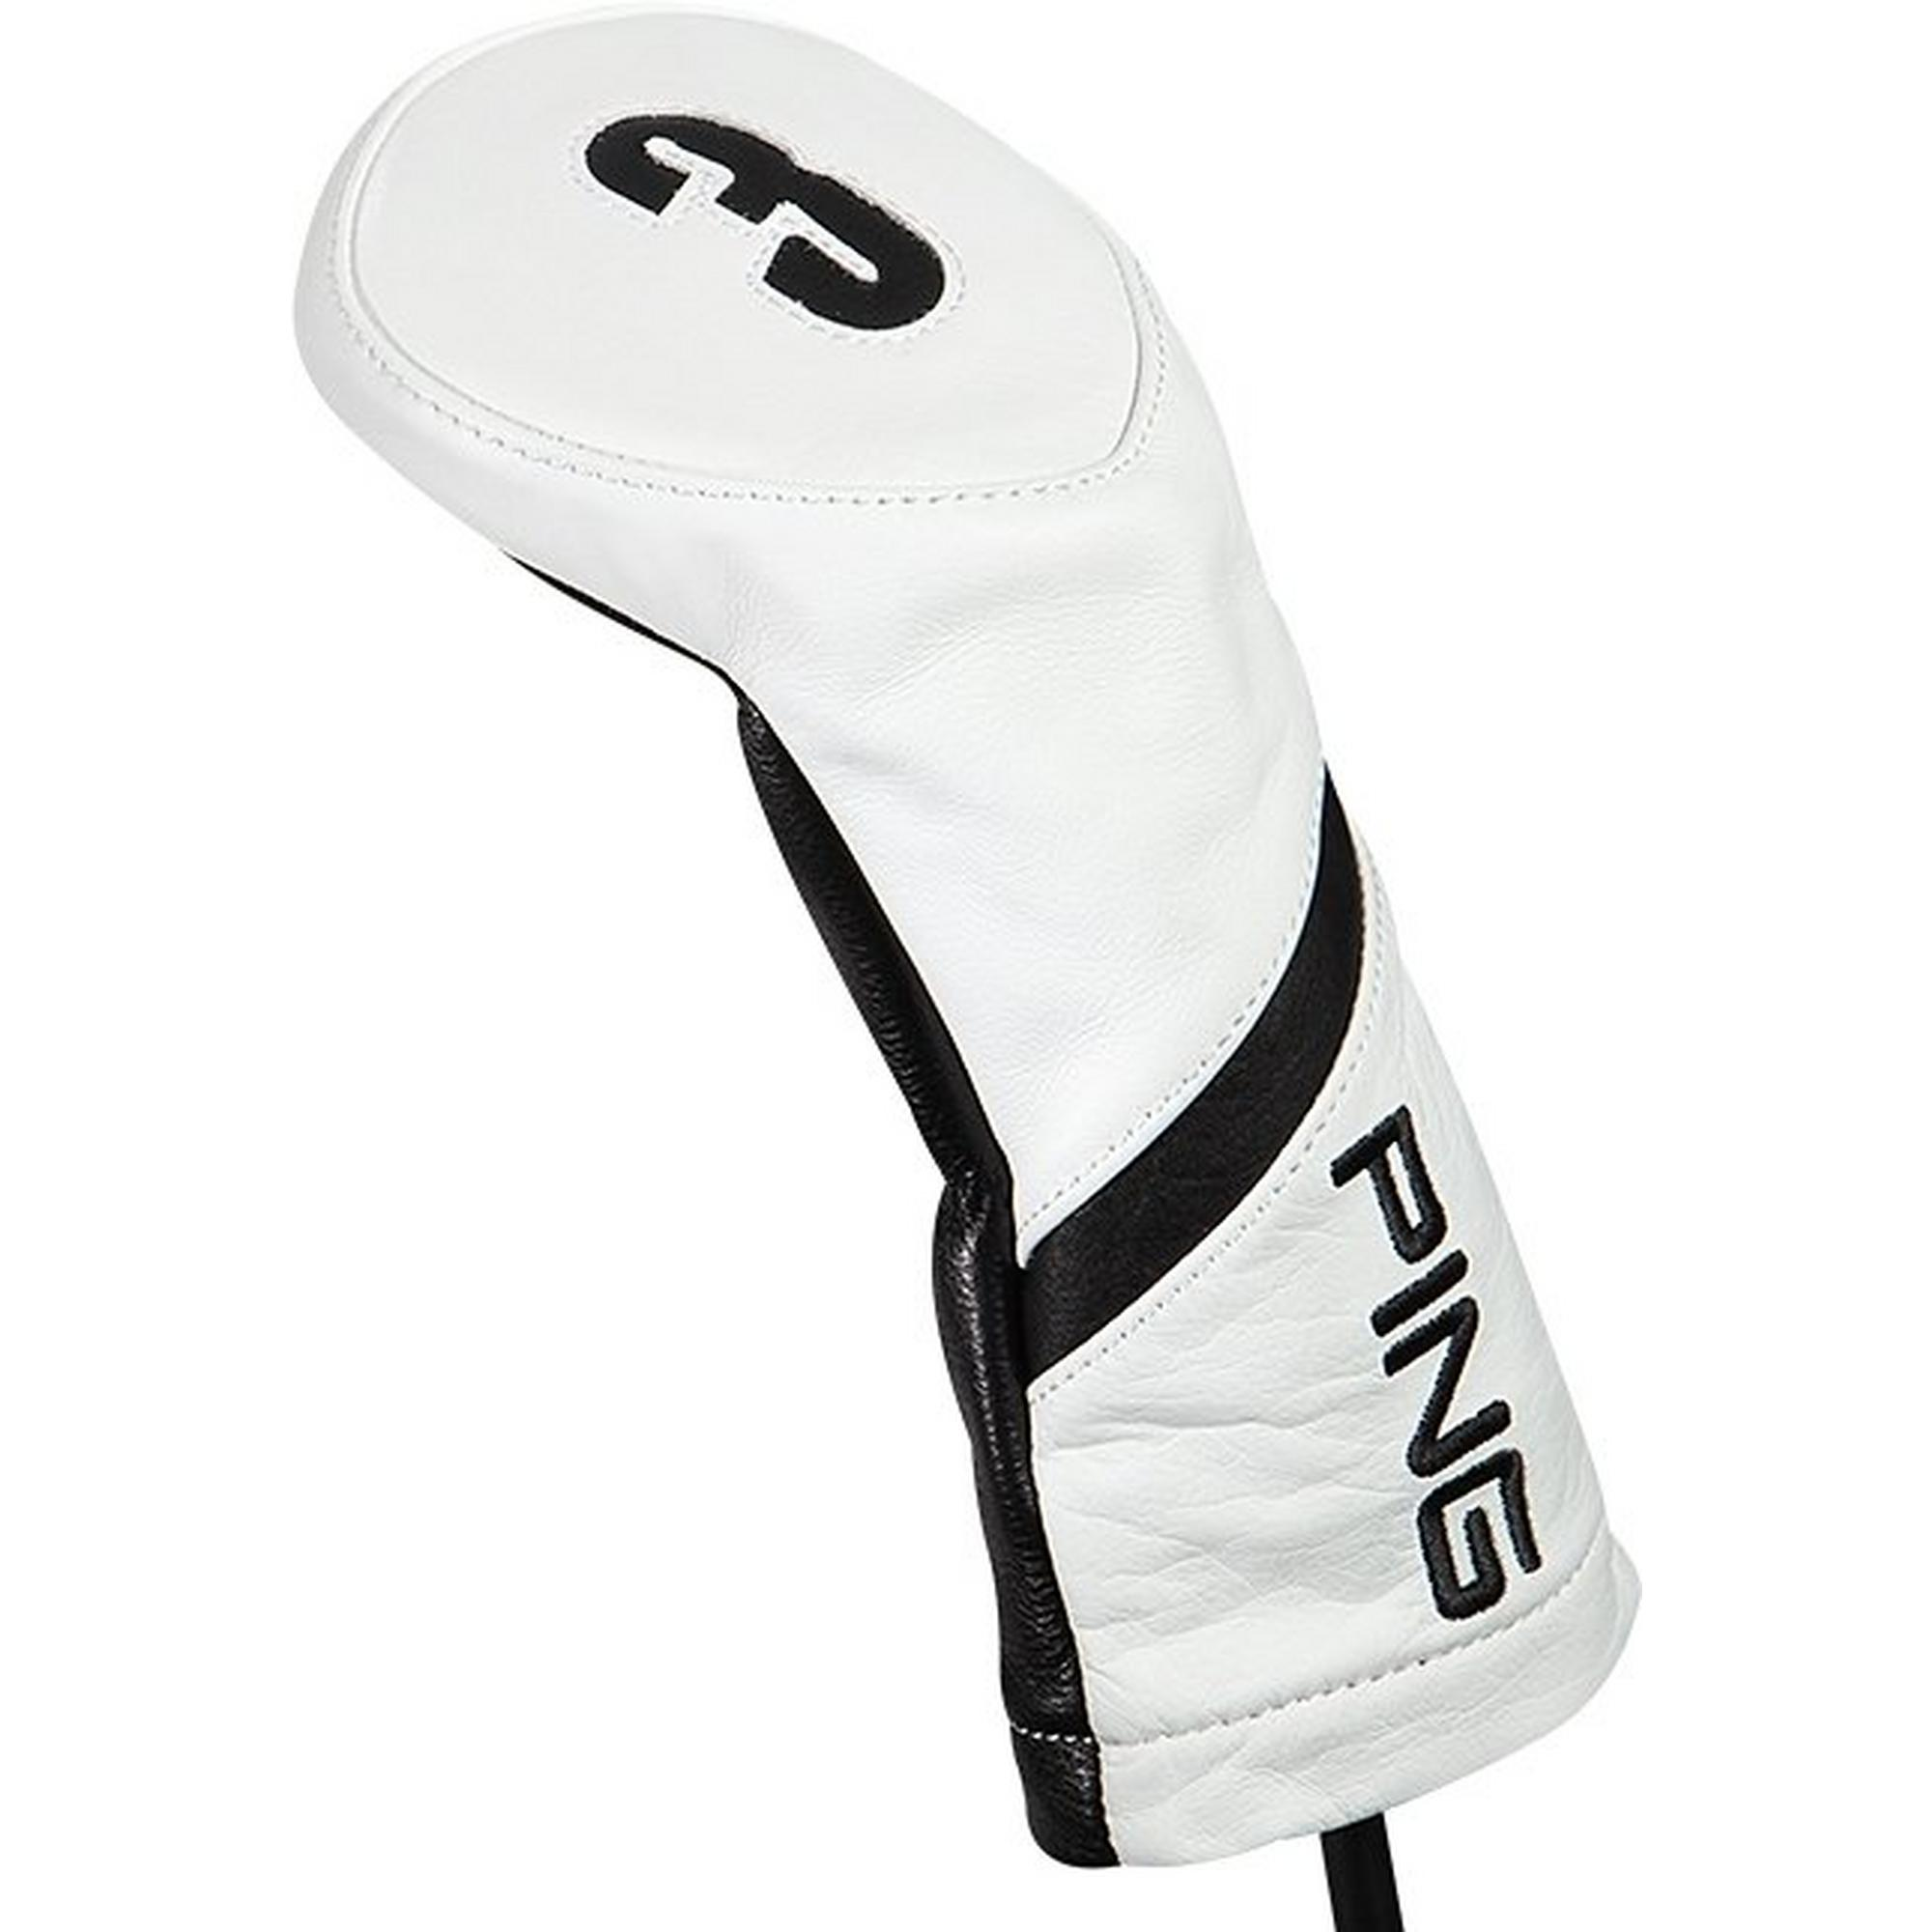 100% Leather Fairway Headcover